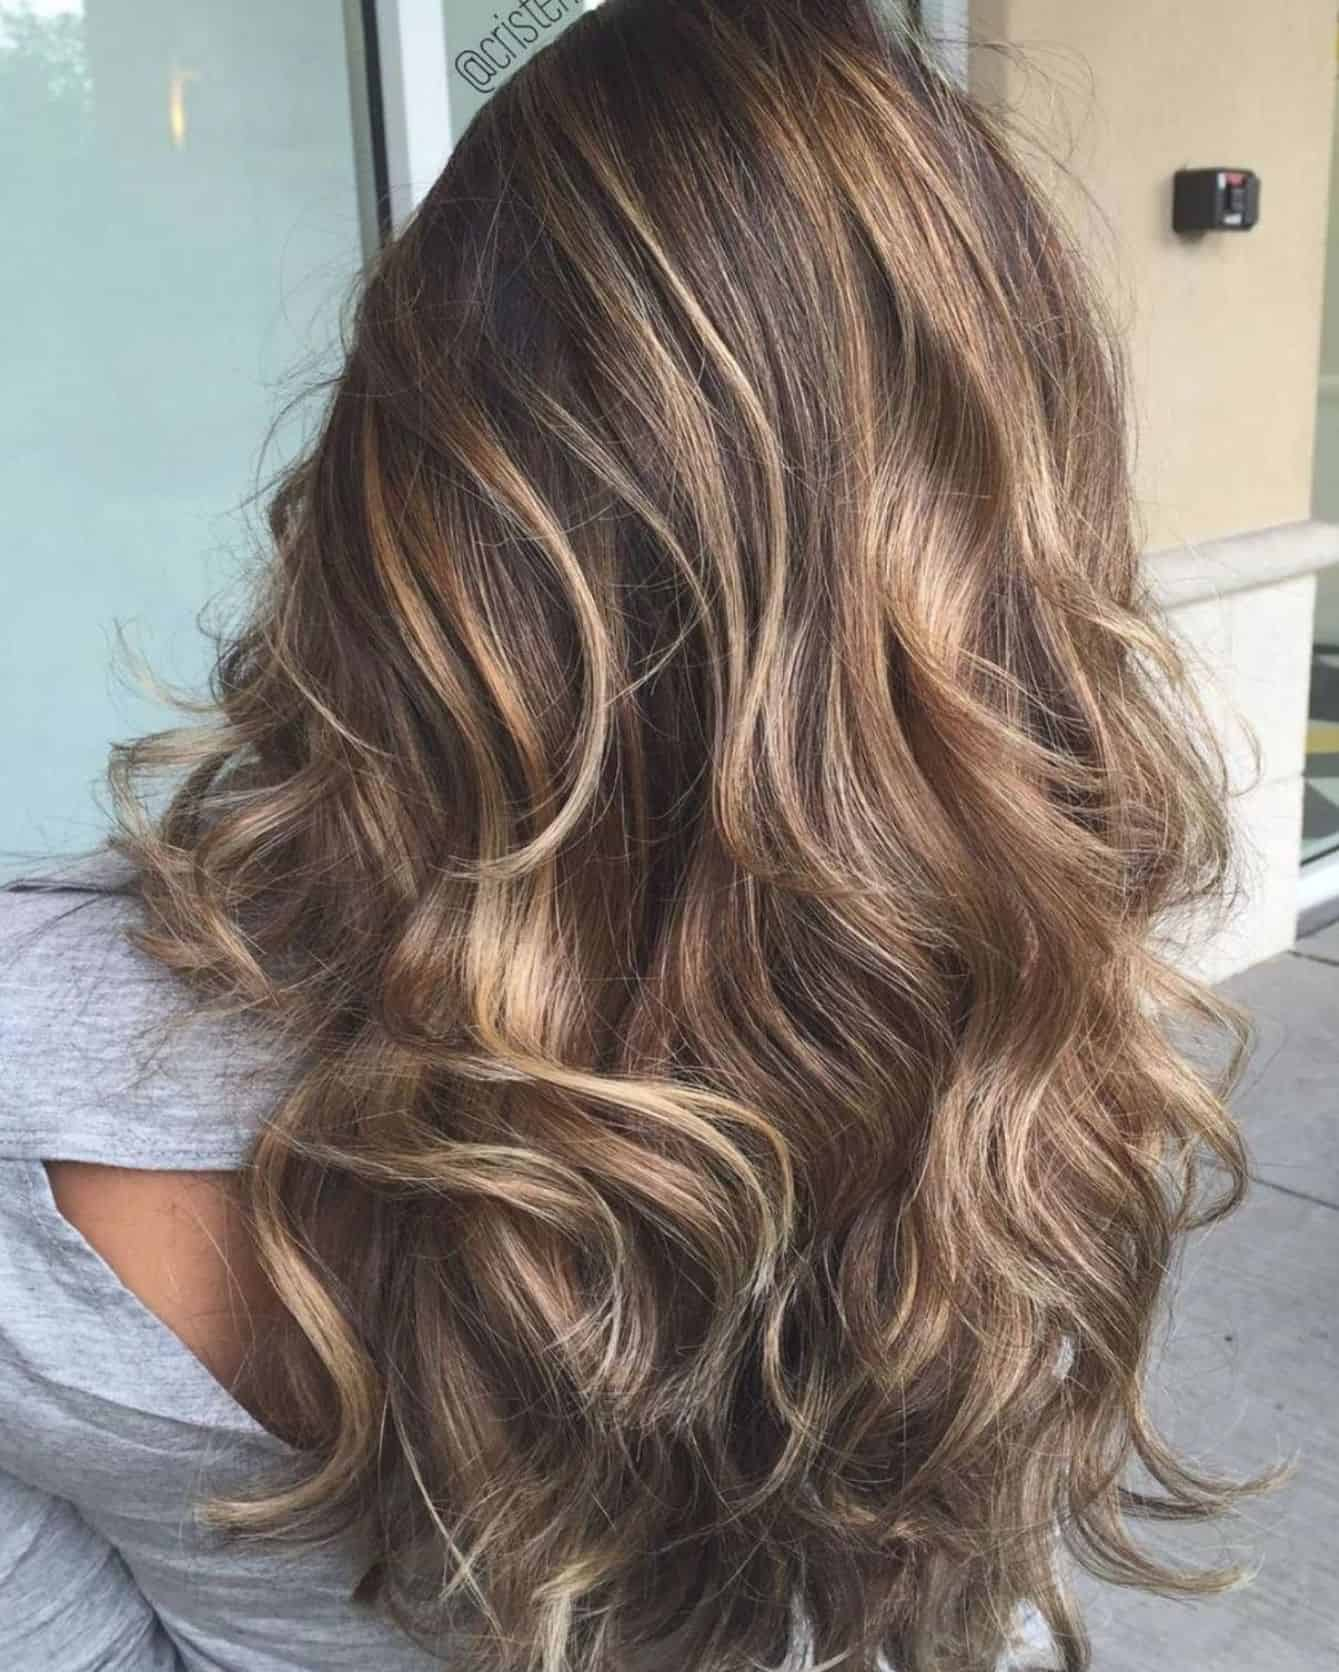 Long chocolate hair with subtle highlights